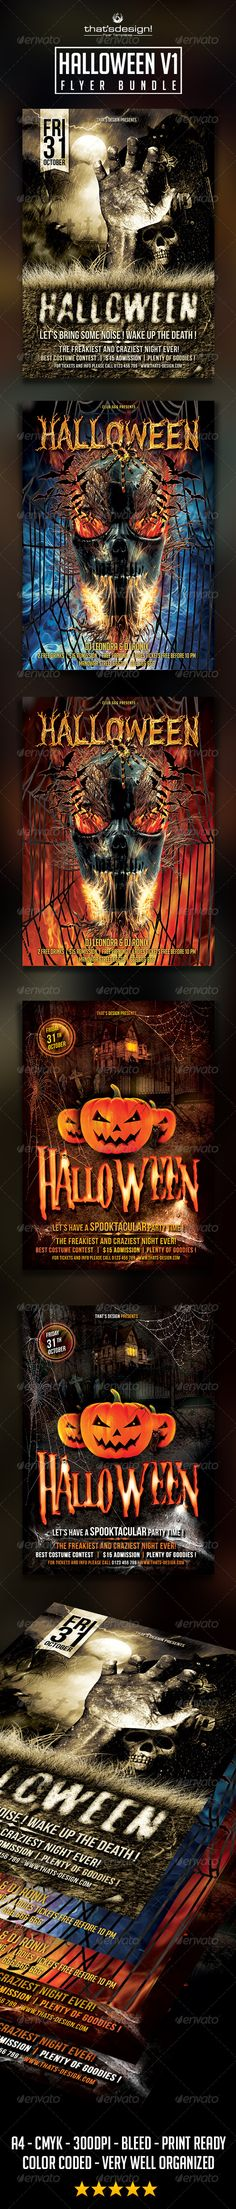 Halloween Flyer Bundle Template PSD   Buy and Download: http://graphicriver.net/item/halloween-flyer-bundle-v1/8772016?WT.ac=category_thumb&WT.z_author=lou606&ref=ksioks